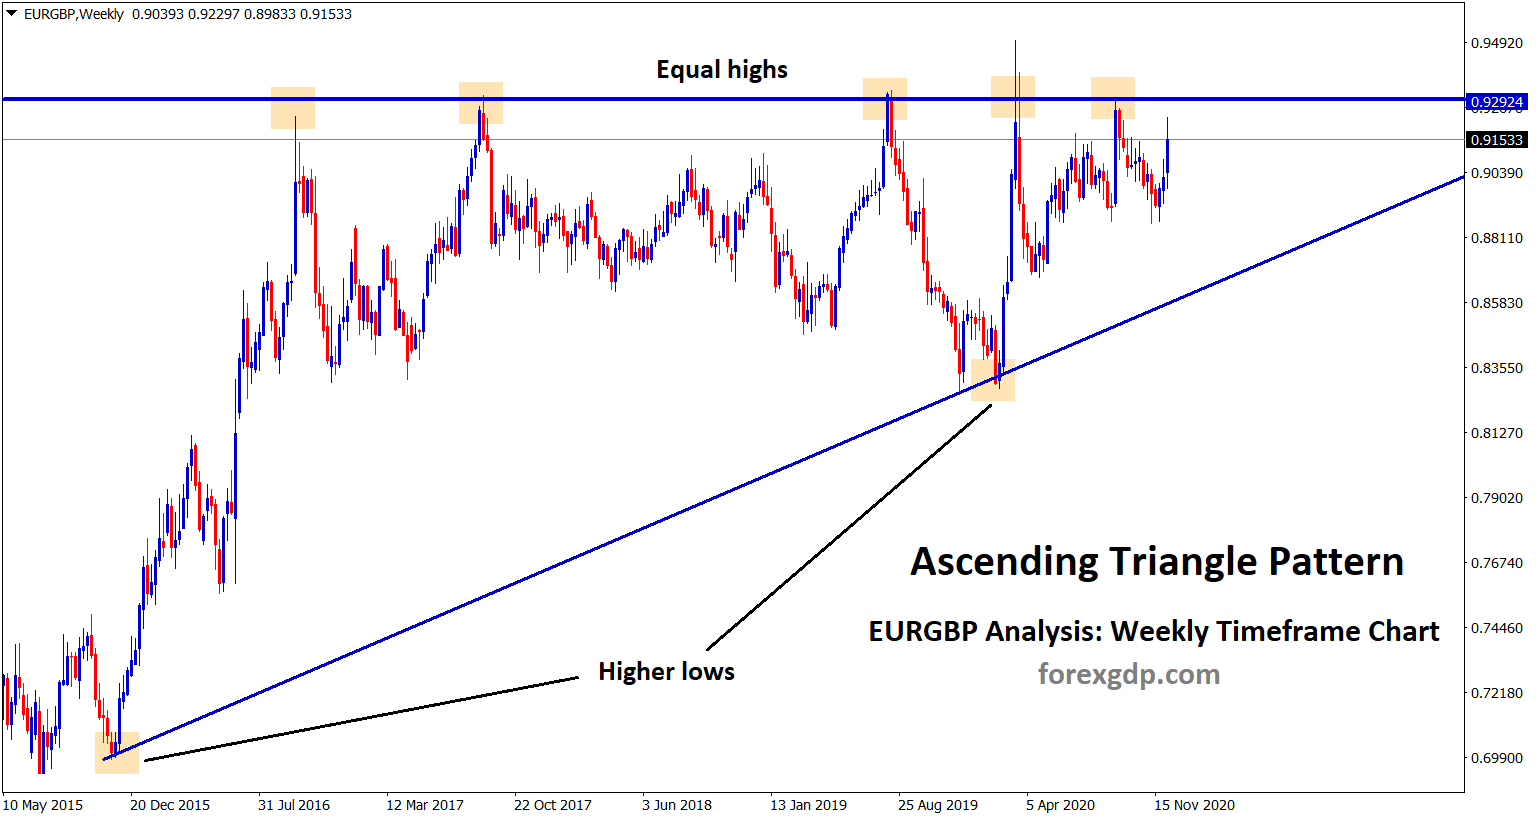 eurgbp ascending triangle pattern going to end soon